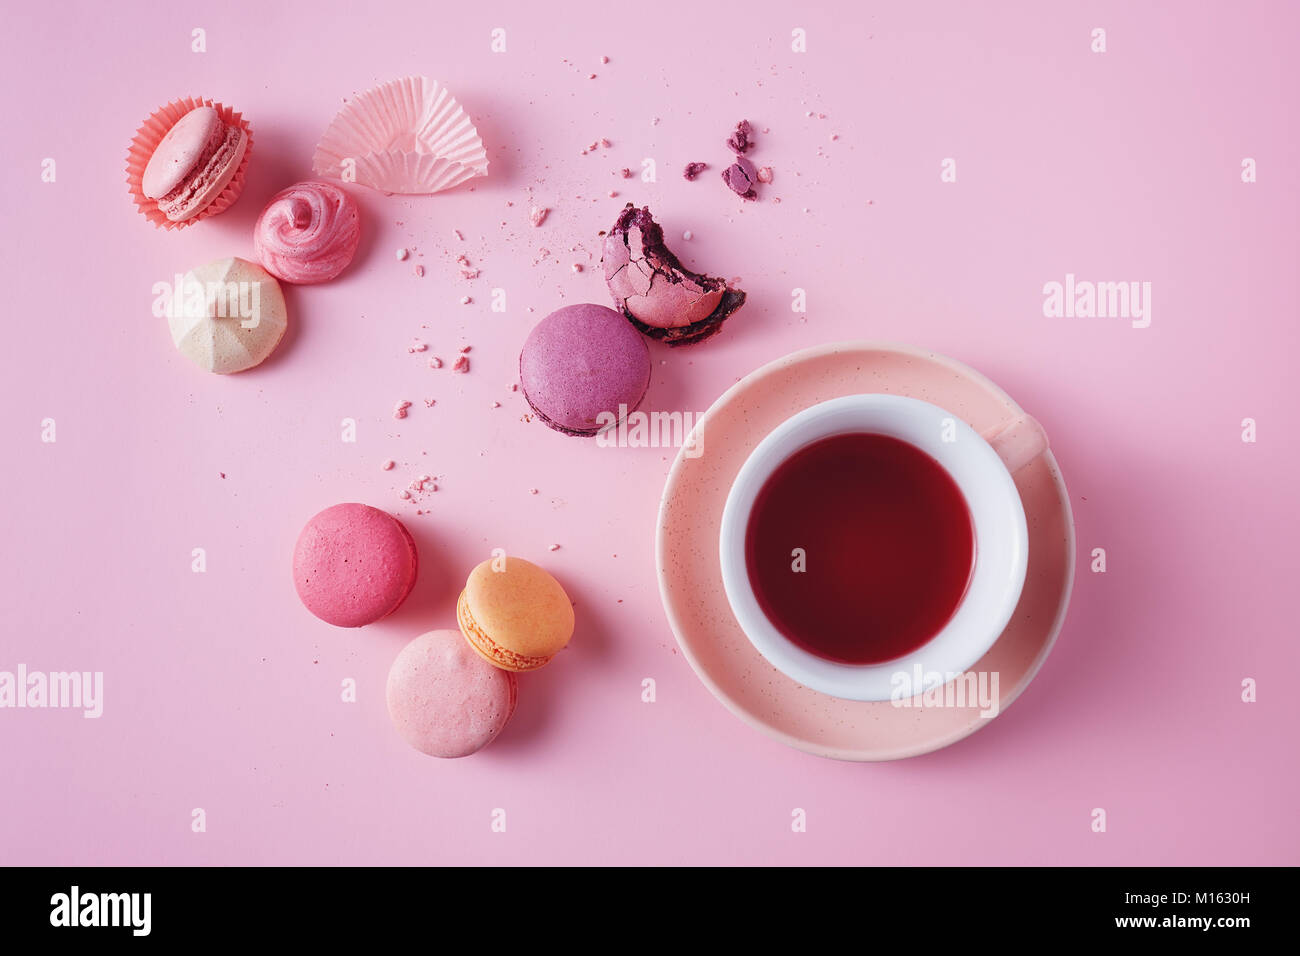 Sweet french macarons and meringues on pink background. - Stock Image